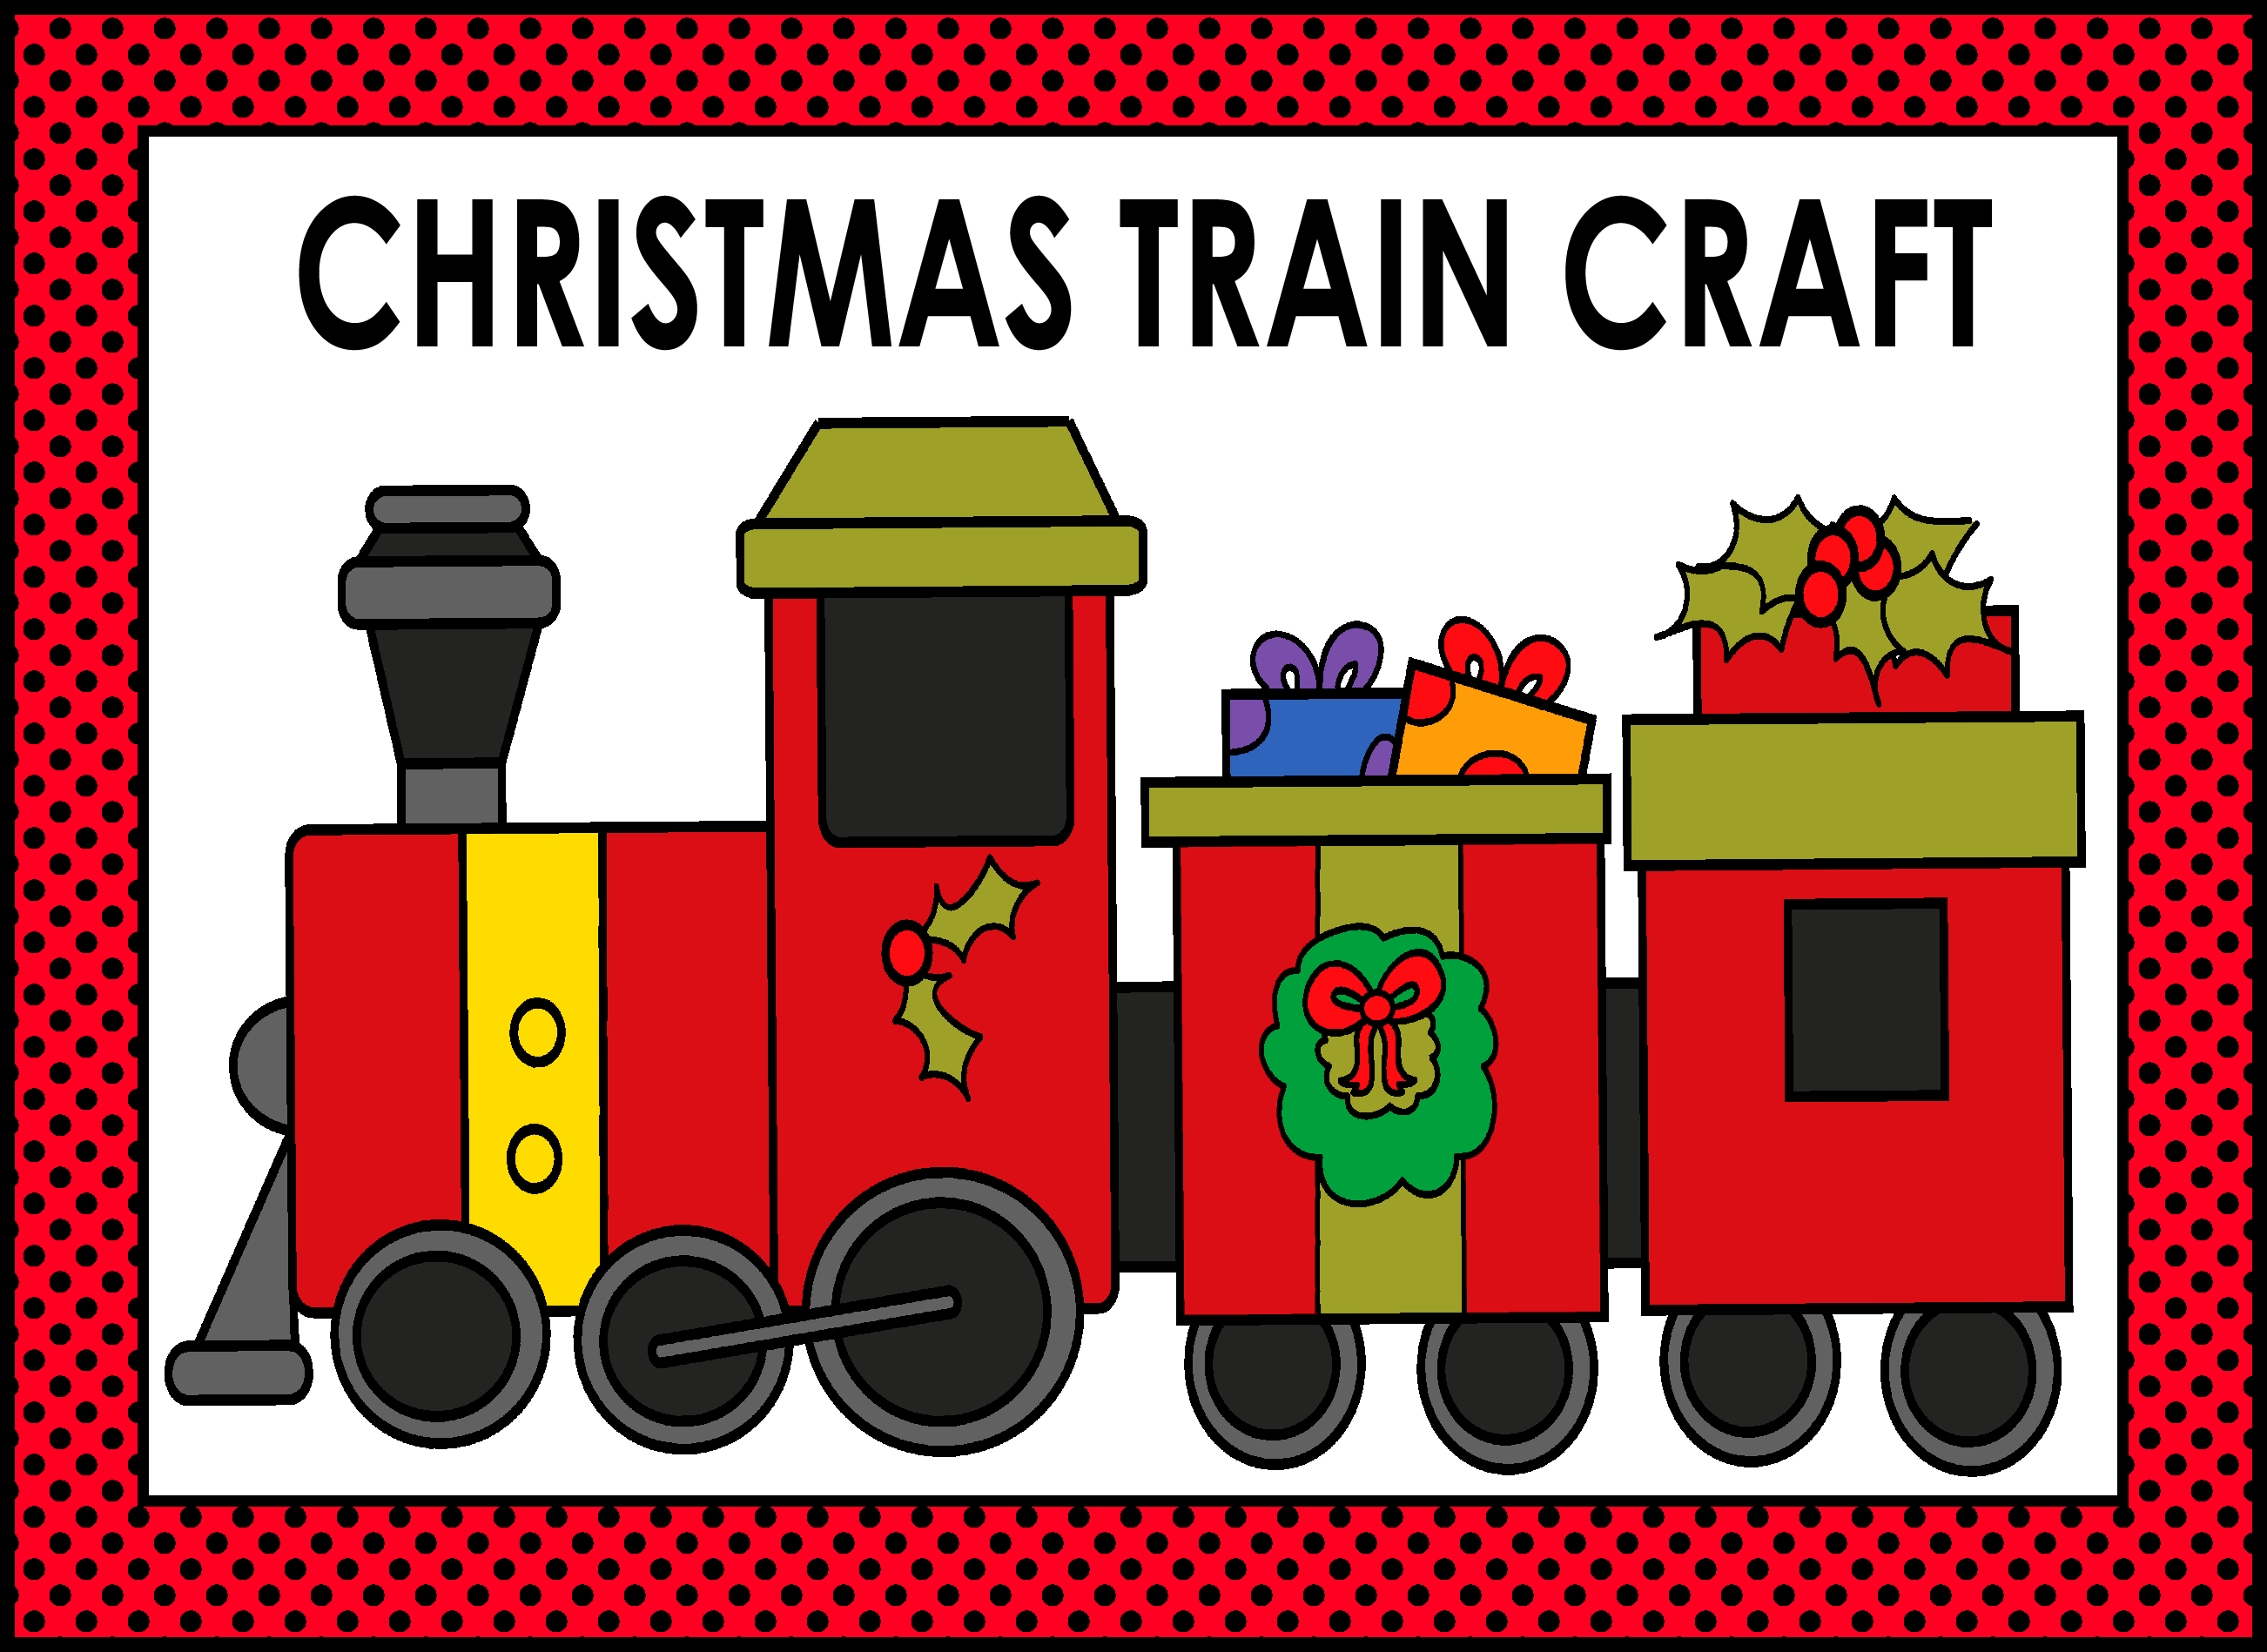 hight resolution of christmas train craft children can color cut and assemble the christmas train craft